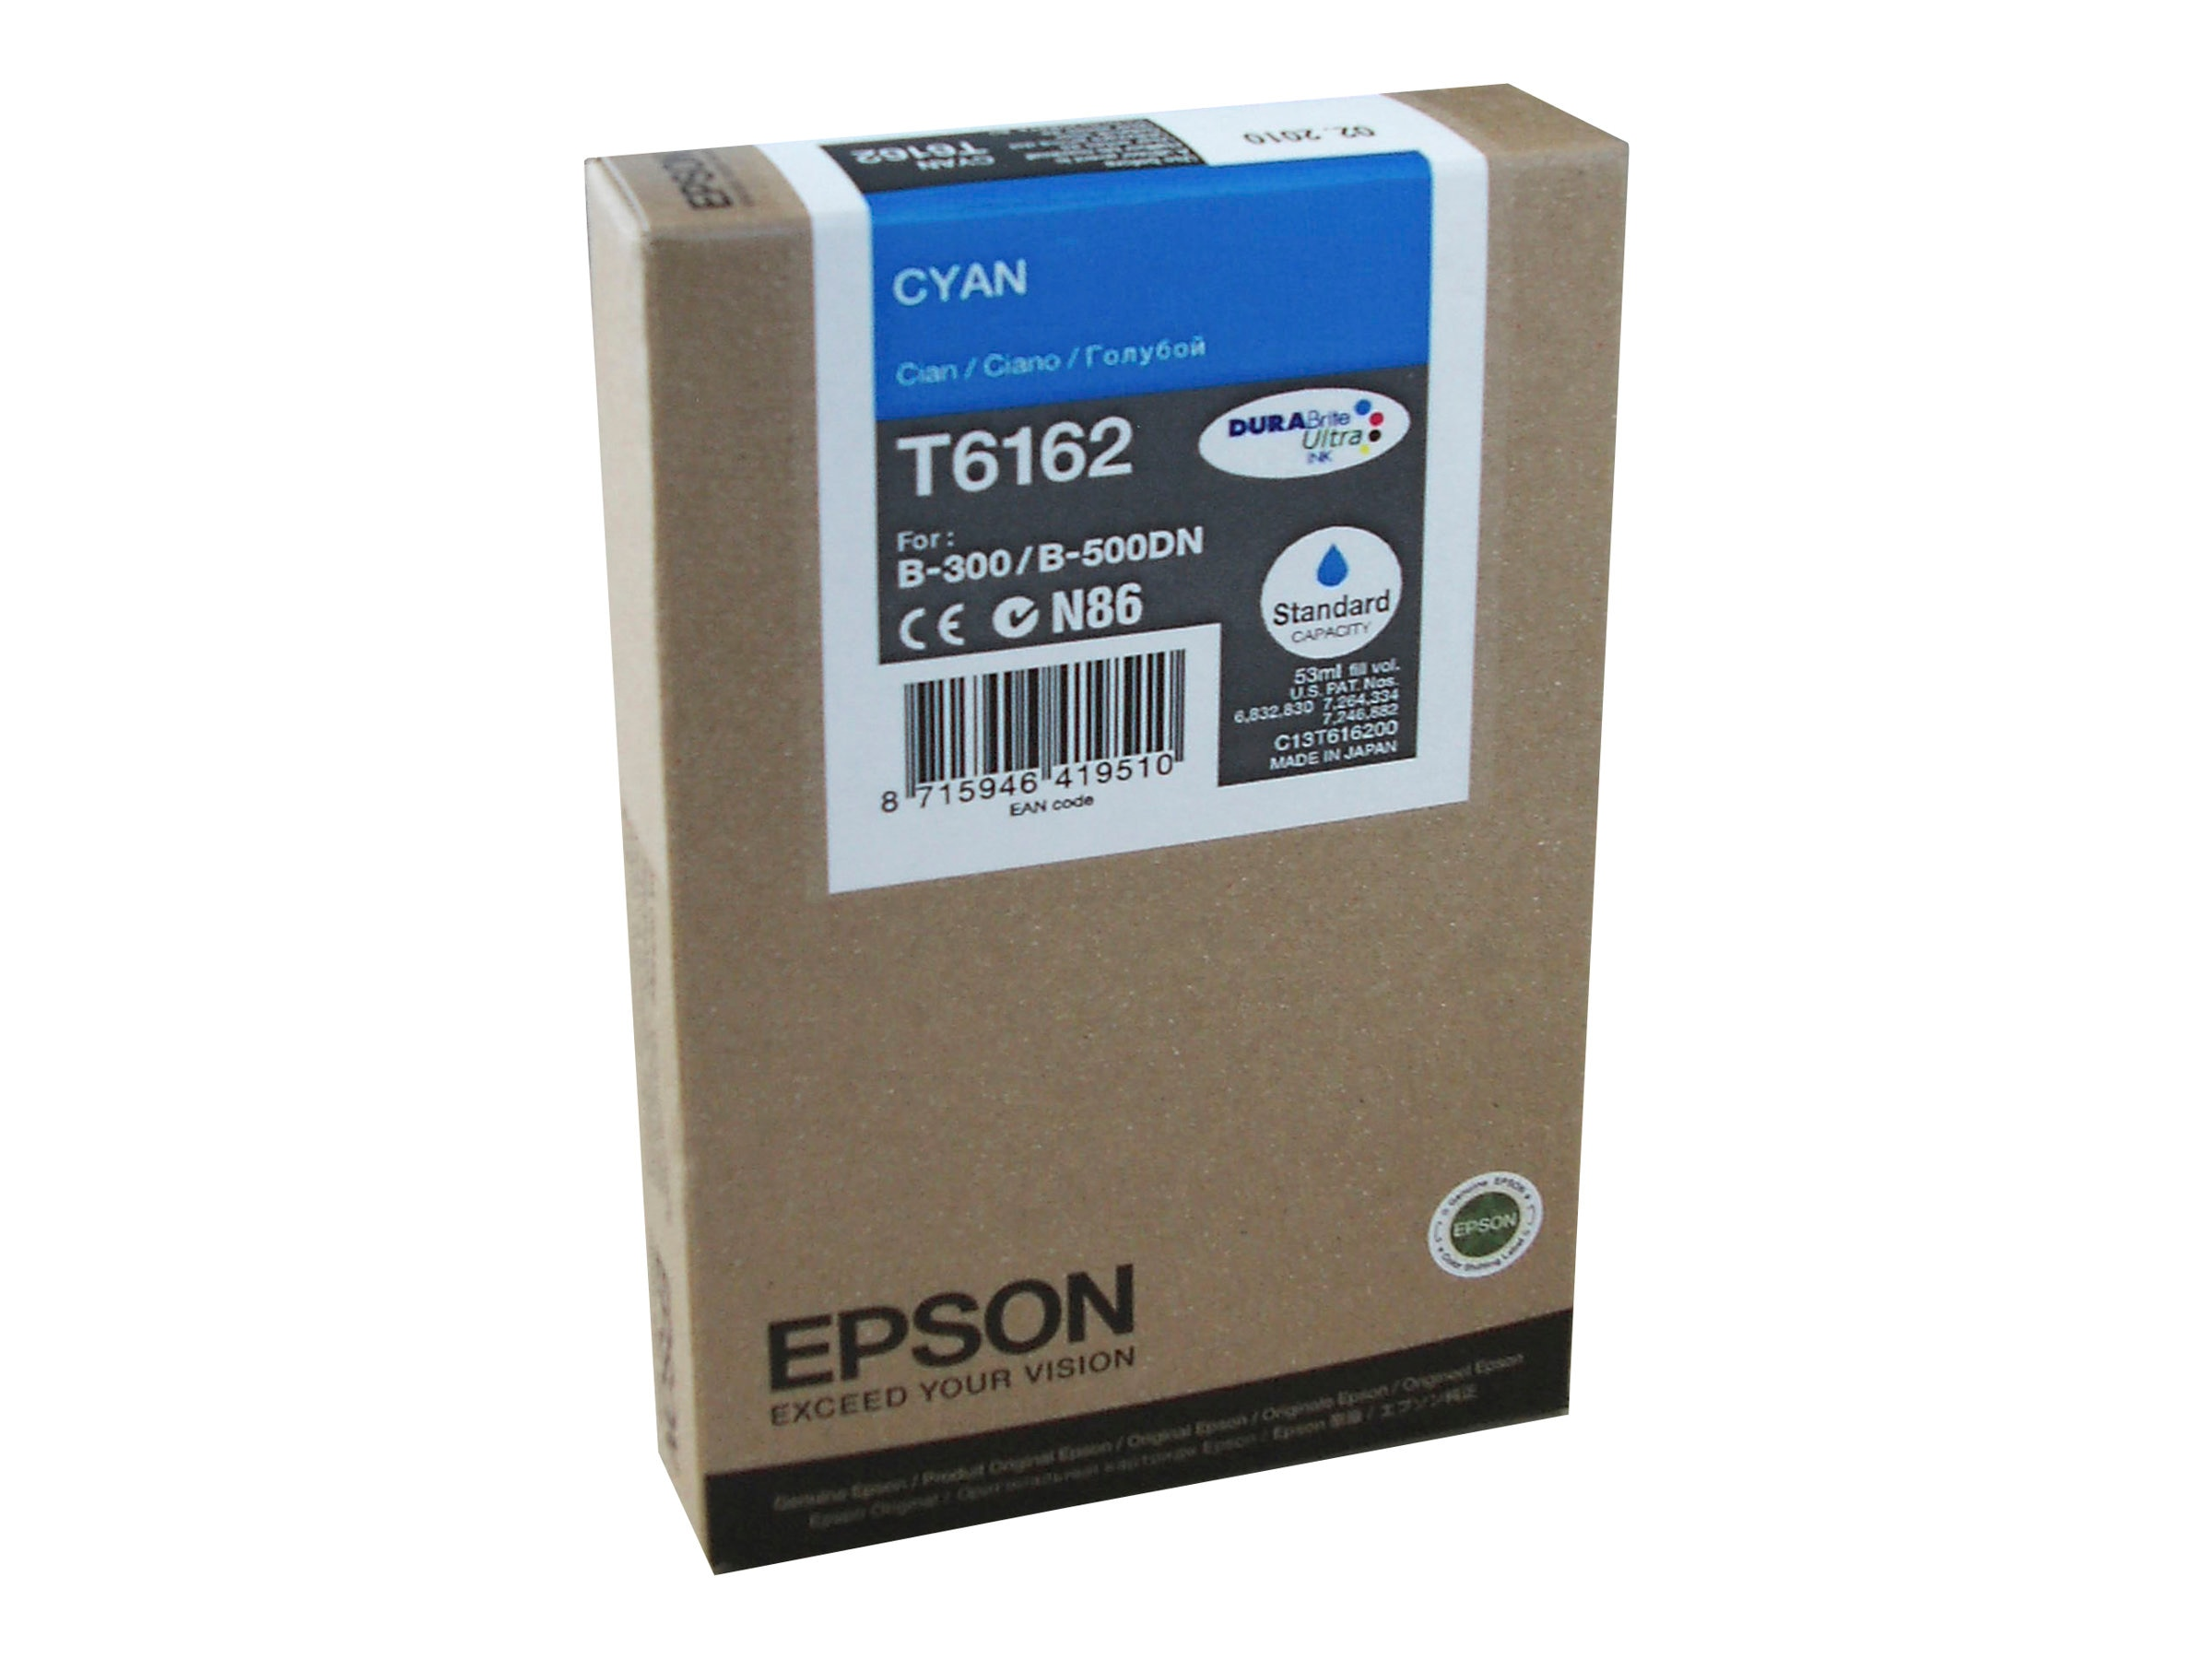 Epson Cyan Ink Cartridge for B-300 & B-500DN Business Color Ink Jet Printer